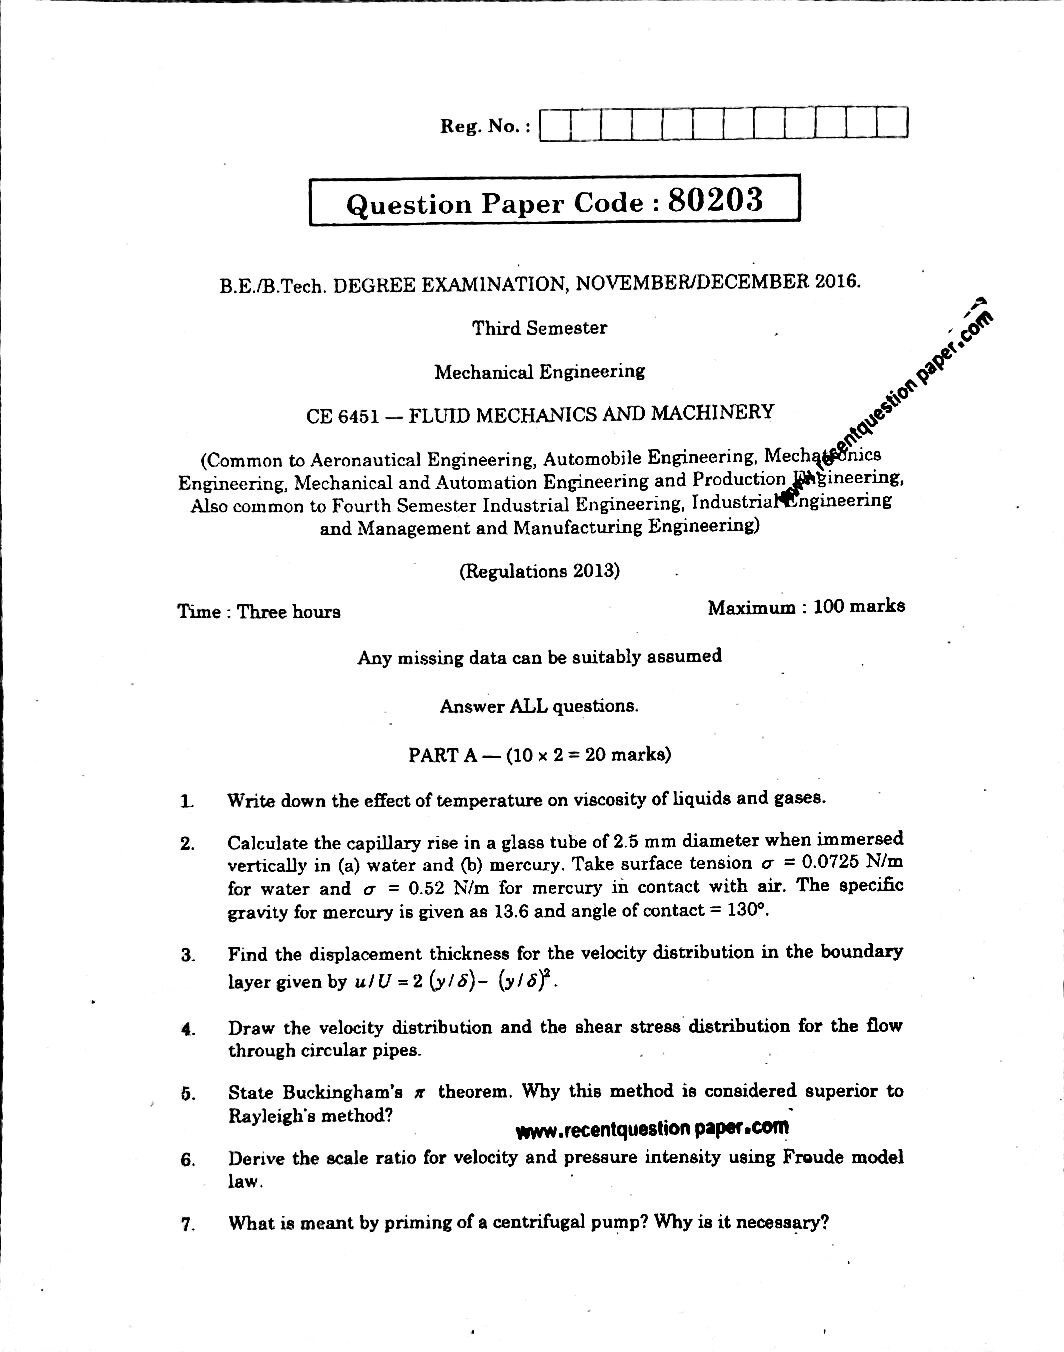 CE6451 FLUID MECHANICS AND MACHINERY 0 - Recent Question Paper